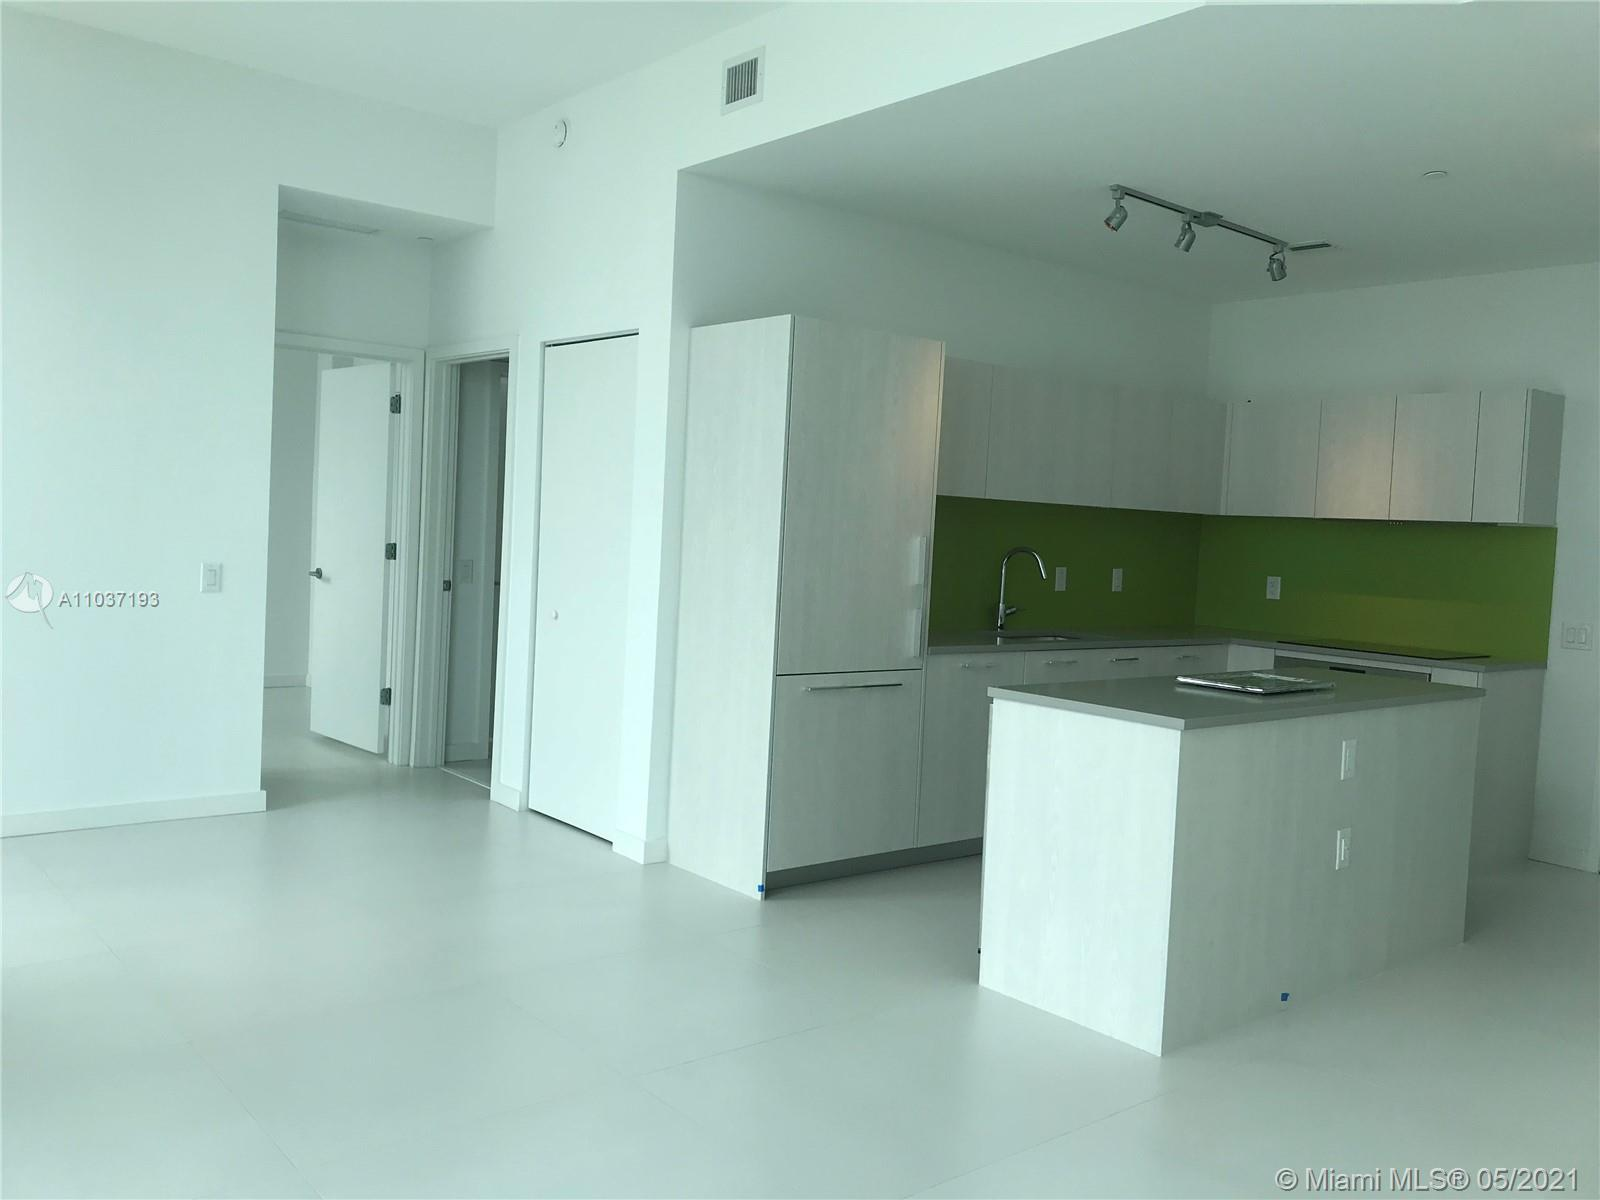 This Beautiful Penthouse has 2 bedrooms, 2 bath is perfectly suited for those who want to live in Mi